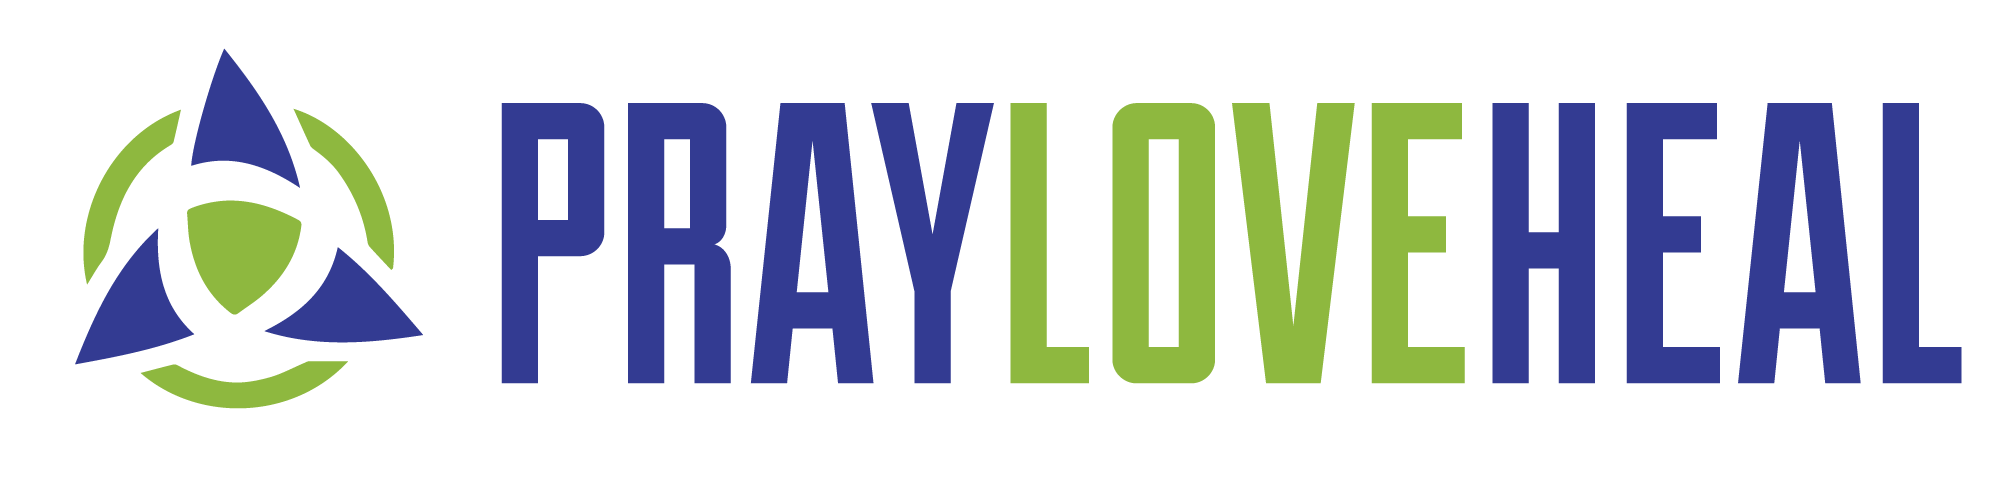 pray heal love logo